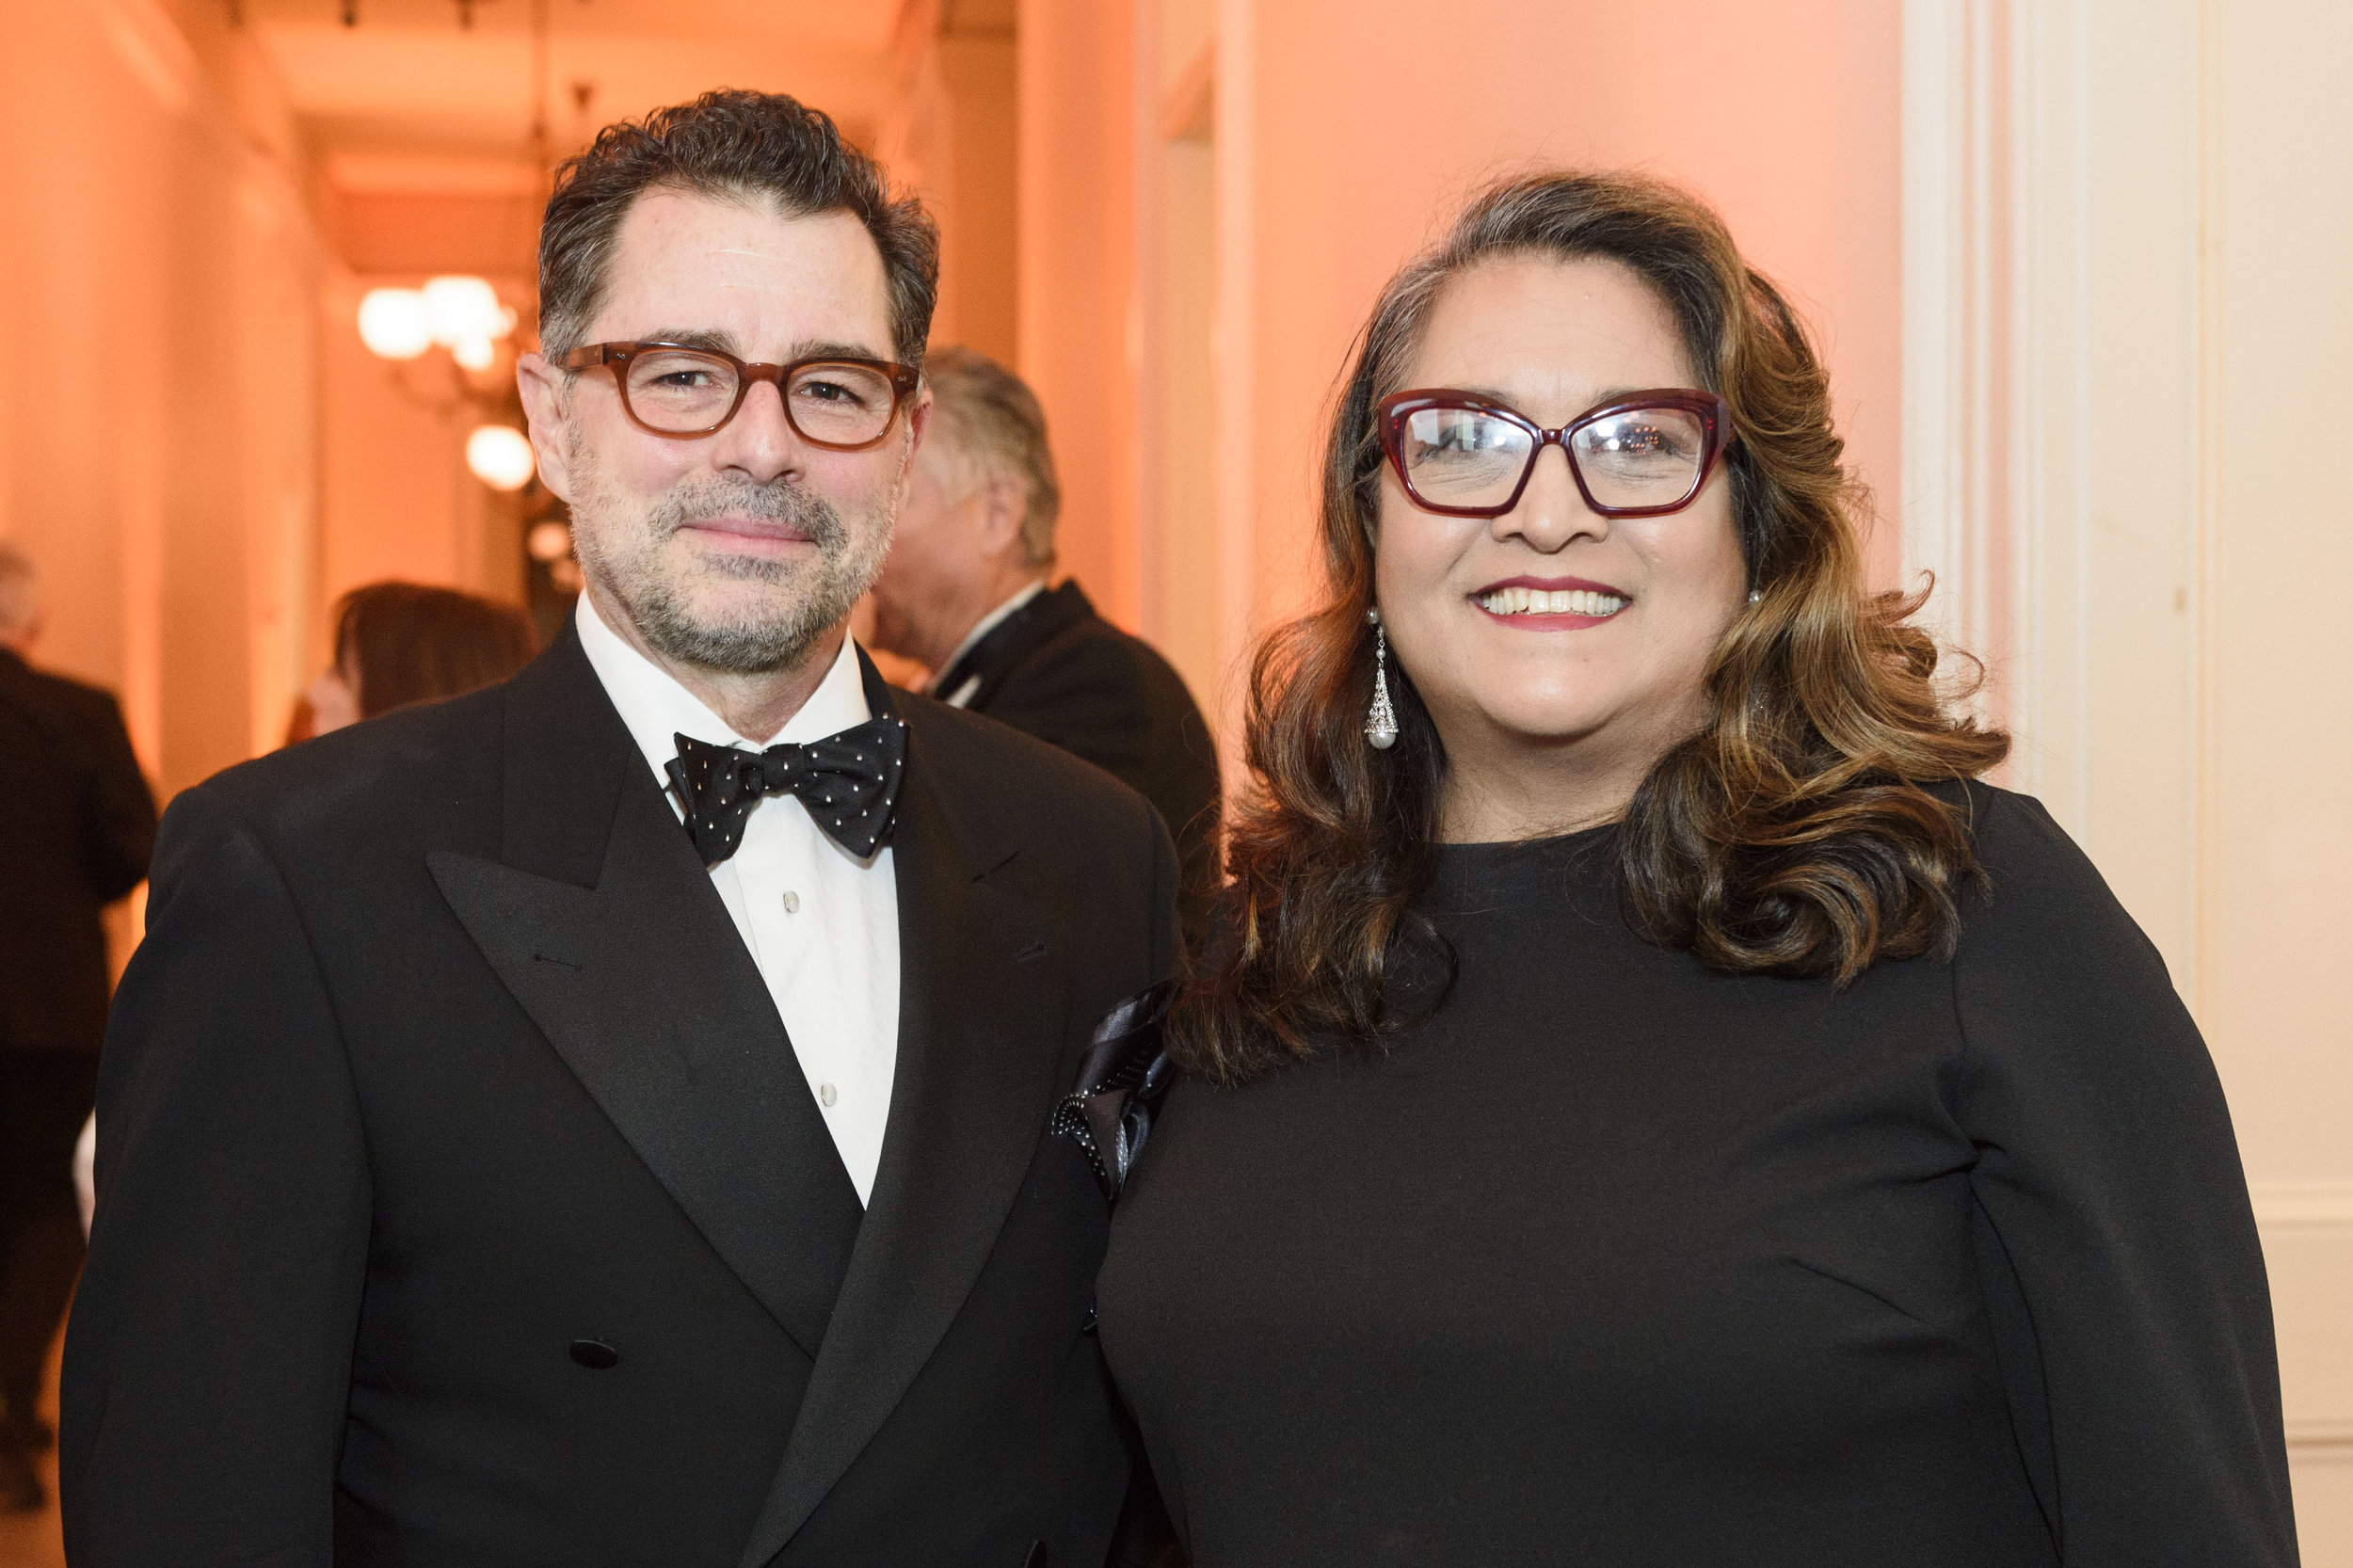 CHS President Emeritus Robert Chattel and SHPO Julianne Polanco at the 2018 Gala (Drew Altizer)